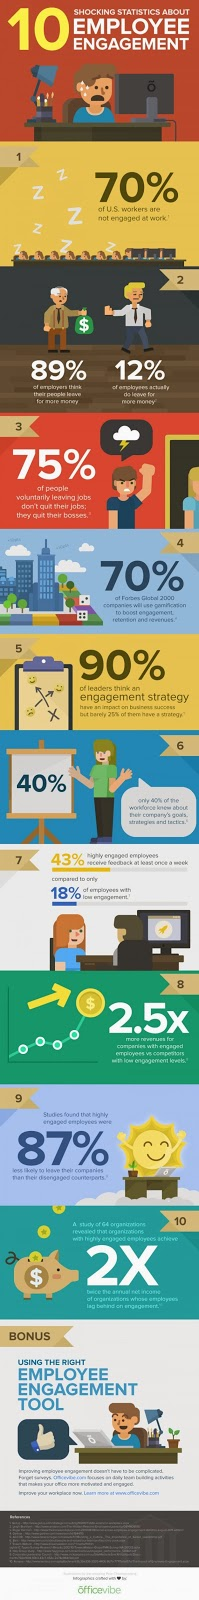 http://cdn2.business2community.com/wp-content/uploads/2014/02/10-shocking-statistics-about-employee-engagement_52e82c76b45cb_w1500.jpg